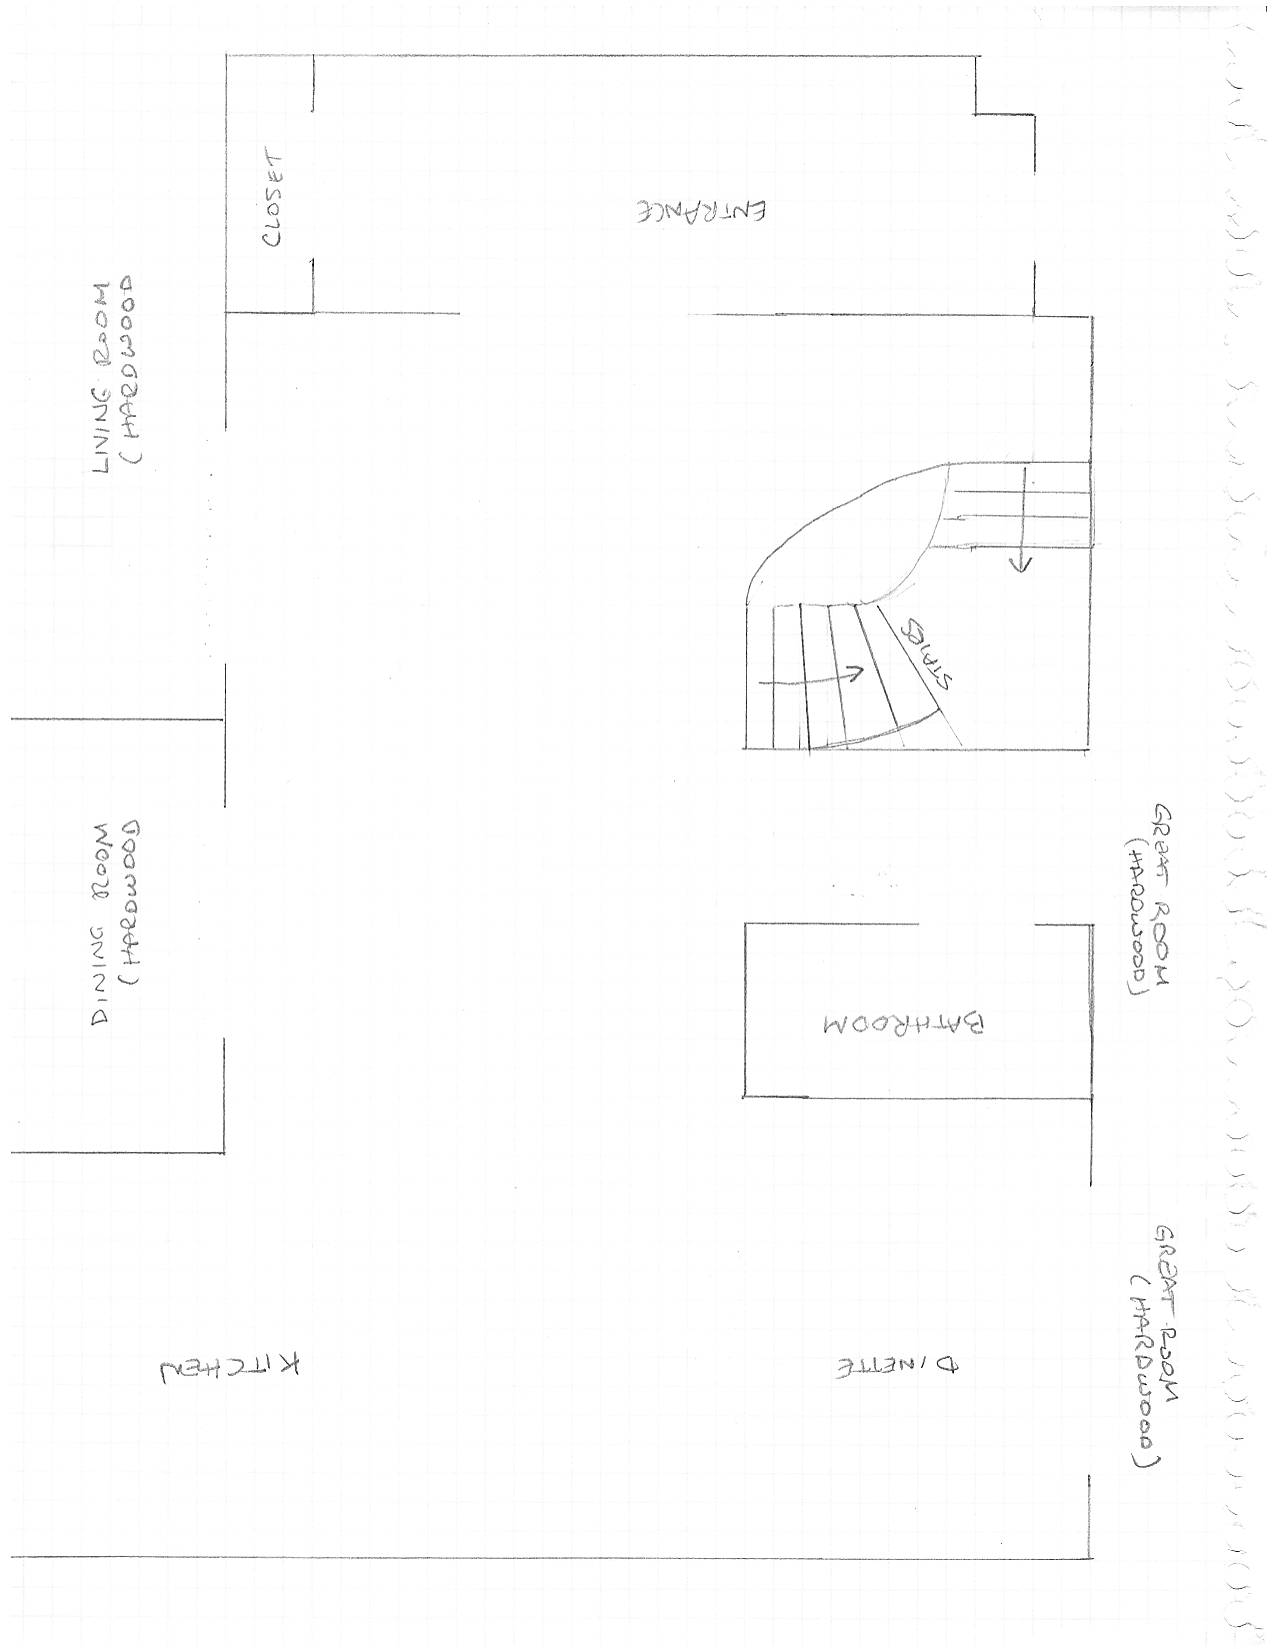 Tile install help/advice needed ASAP-main-floor-plan-tiles.jpg